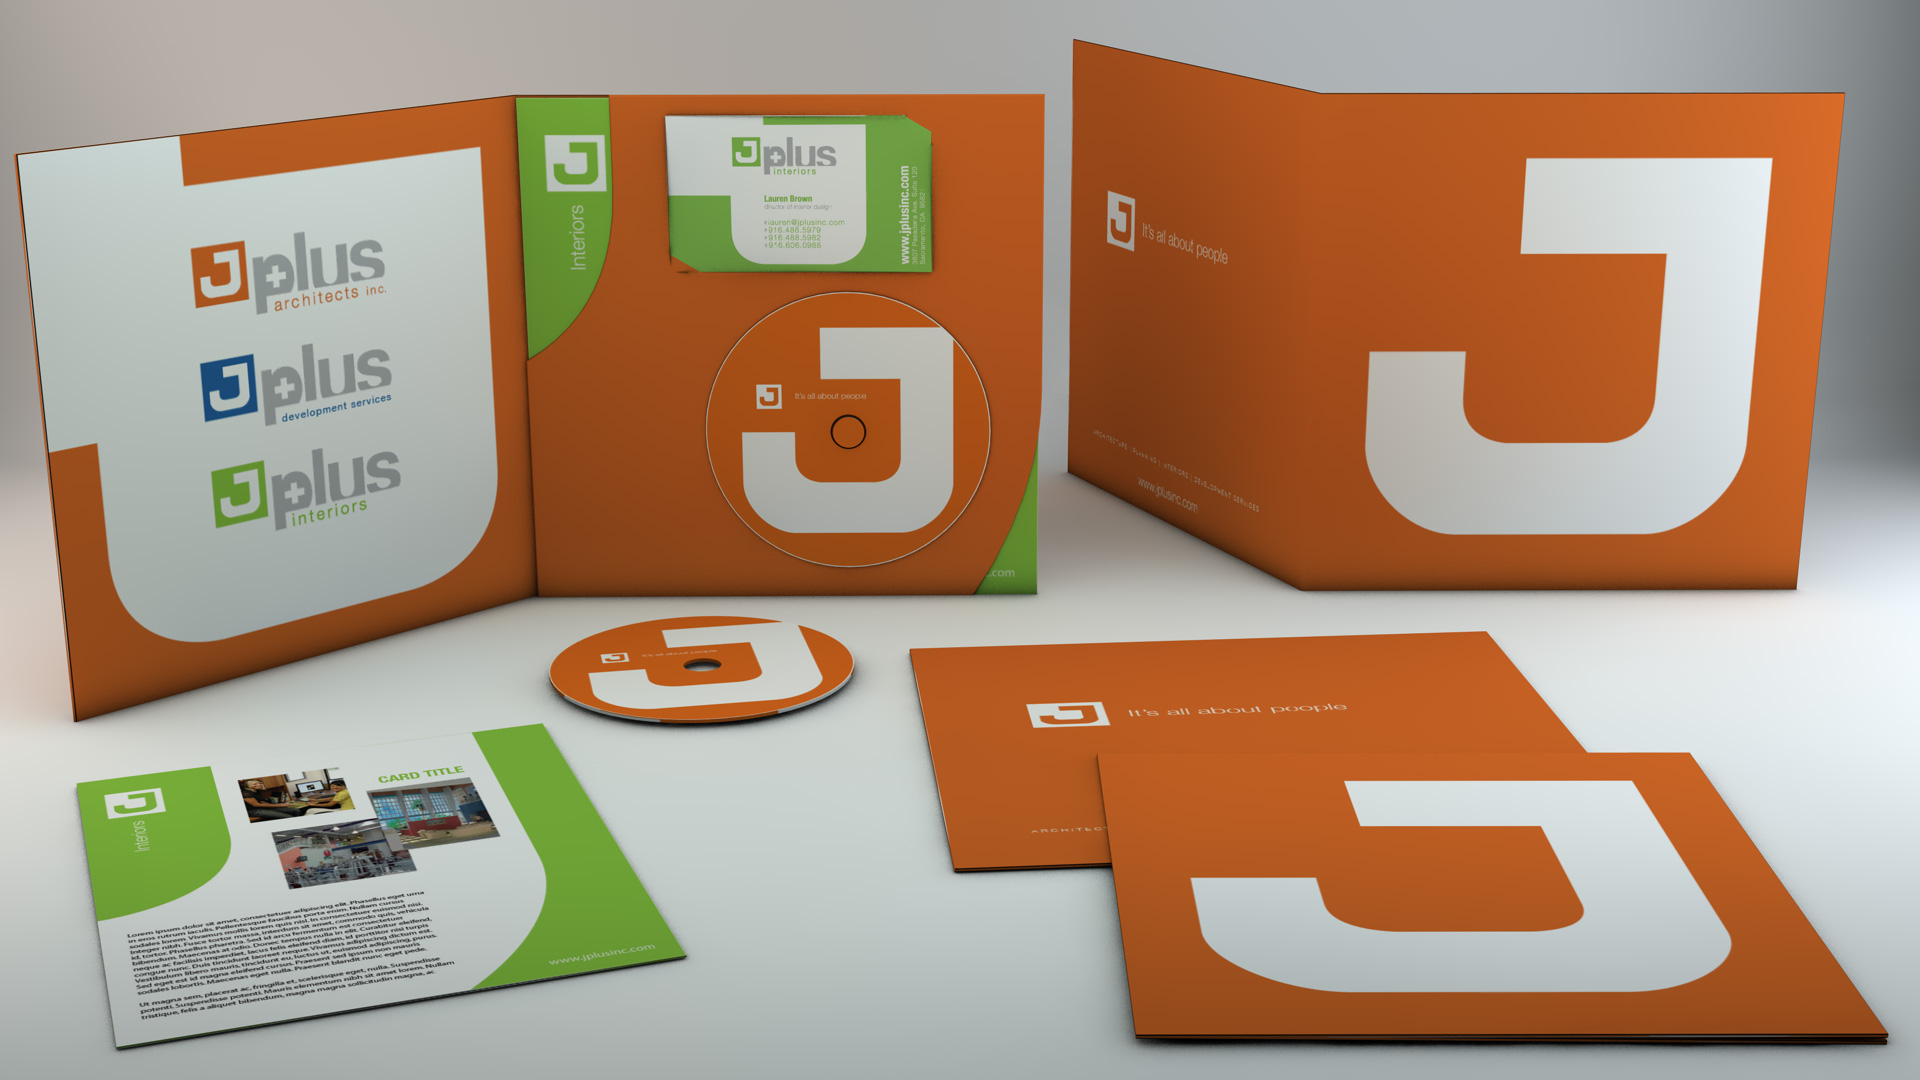 Here you can see how the brochure looks, both folded and unfolded with media included inside.